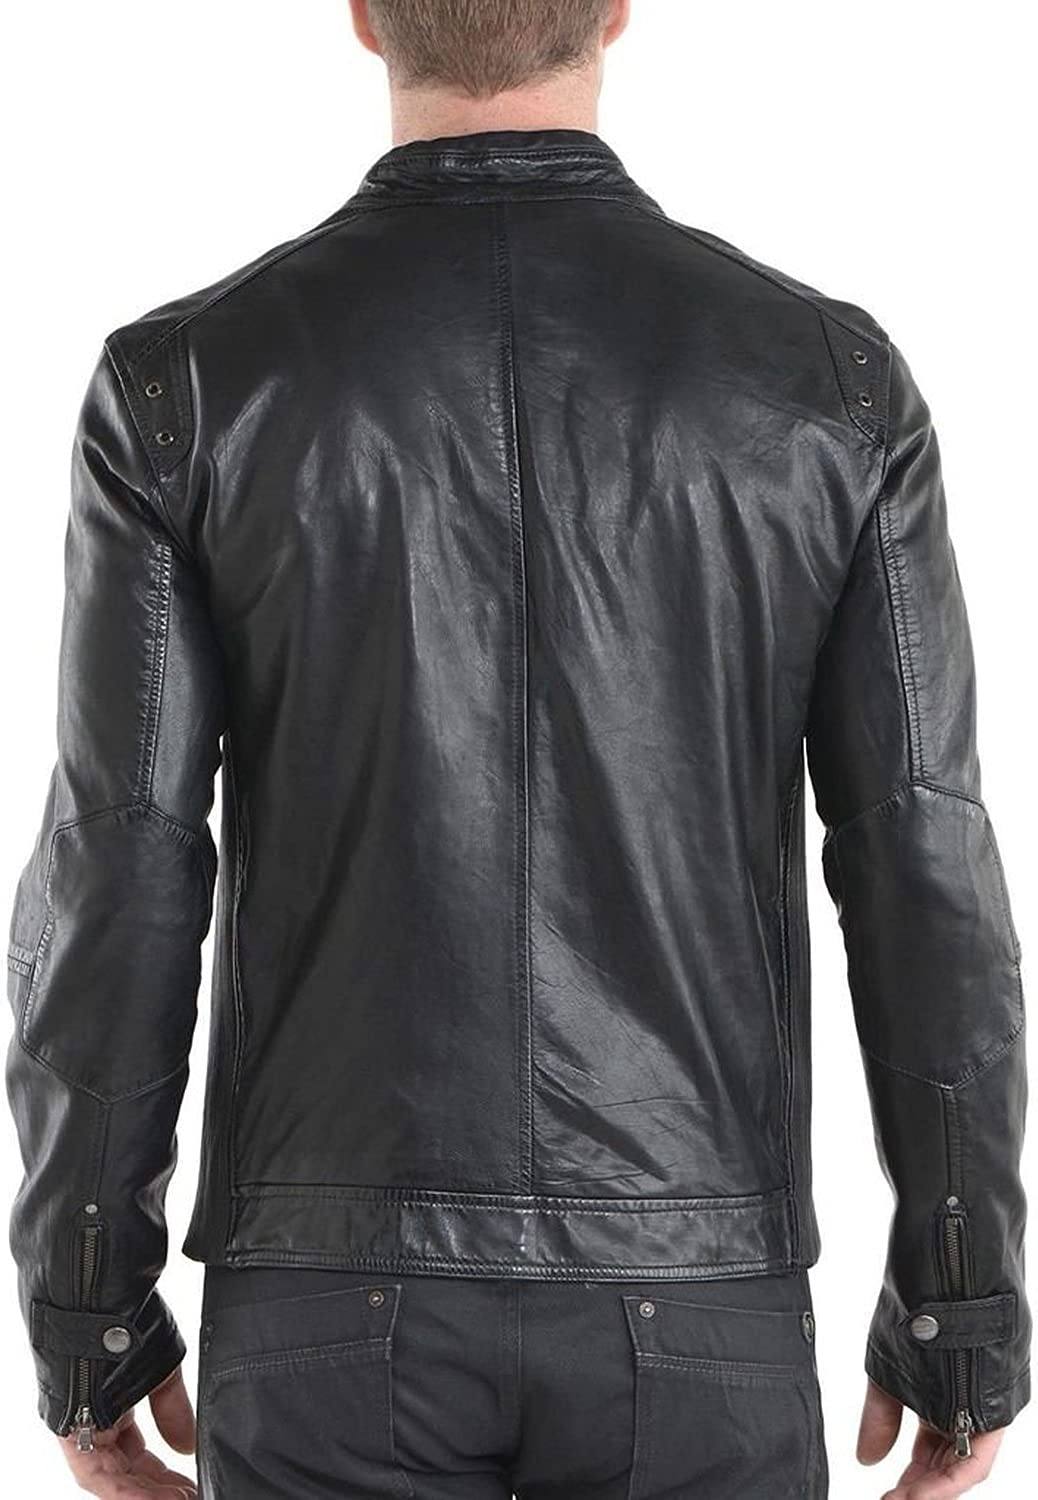 Men Leather Jacket Slim Fit Biker Motorcycle Genuine Lambskin Jacket T788